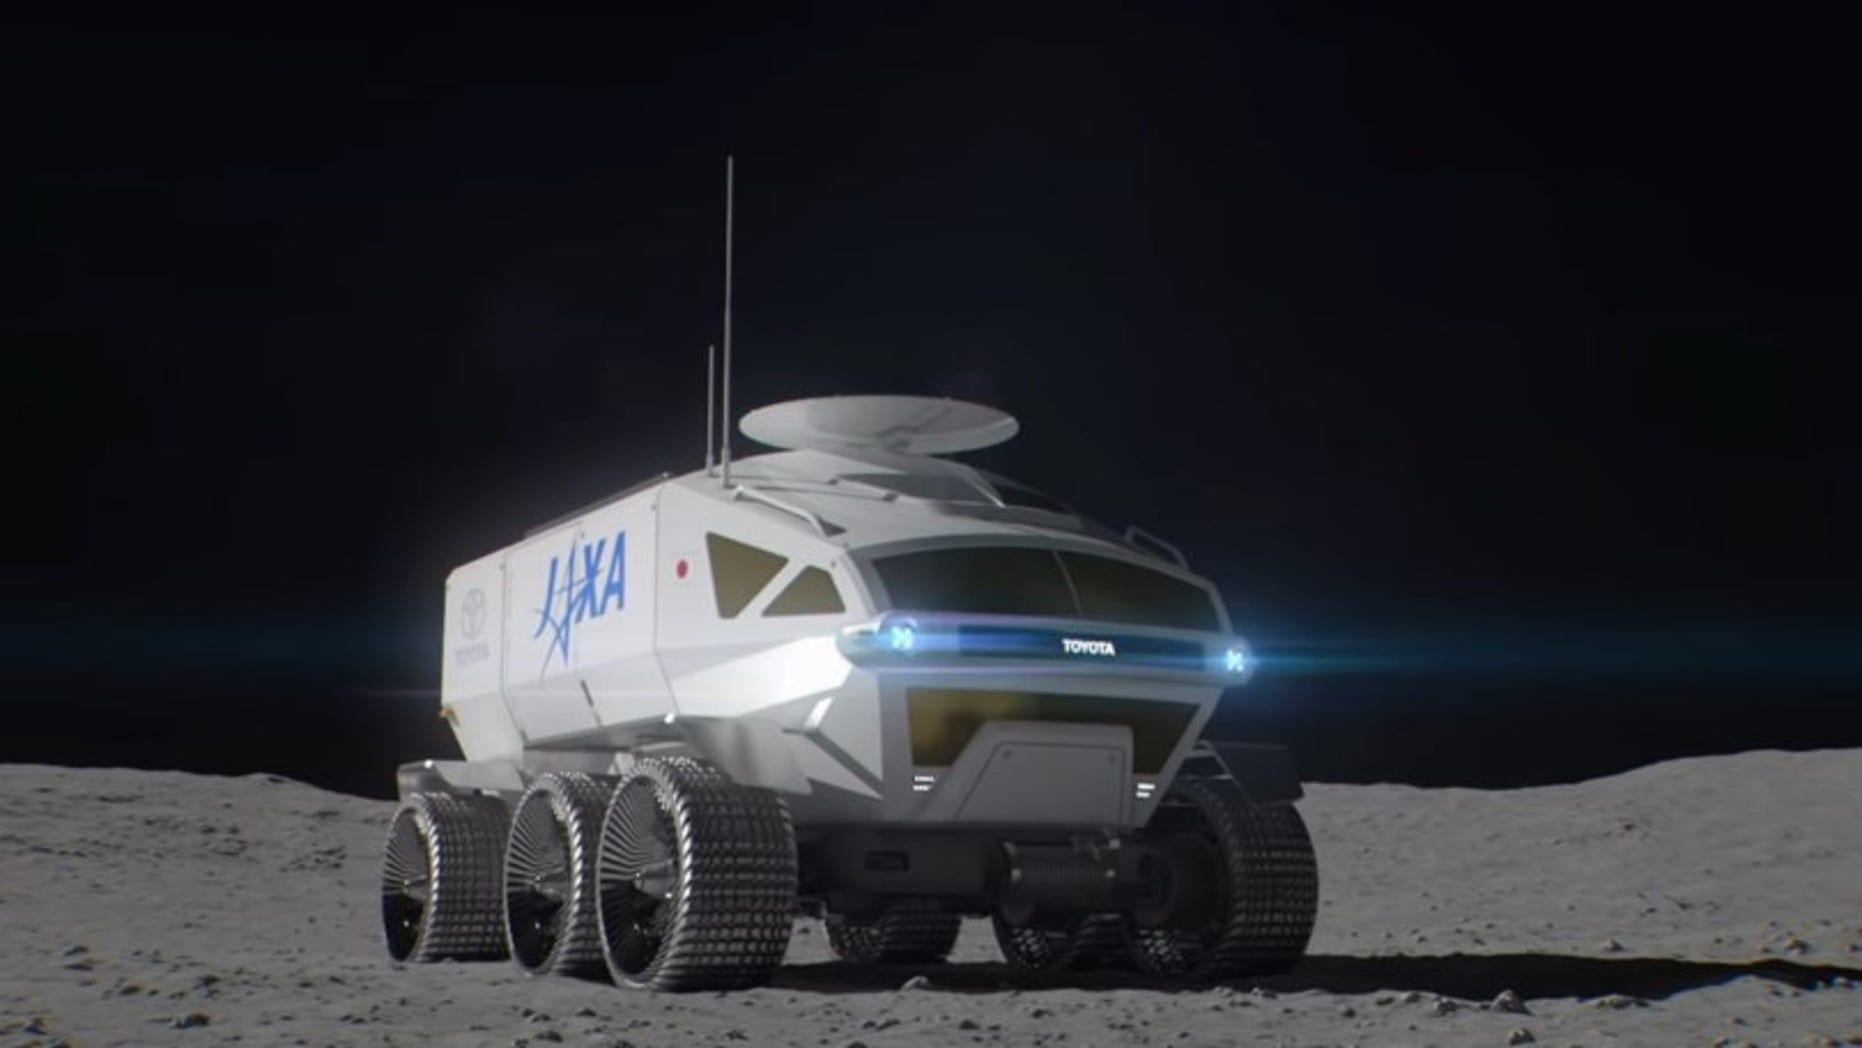 Toyota revealed its plans for a manned pressurized moon rover it hopes to land on the moon in 2029 in collaboration with the Japanese Aerospace Exploration Agency